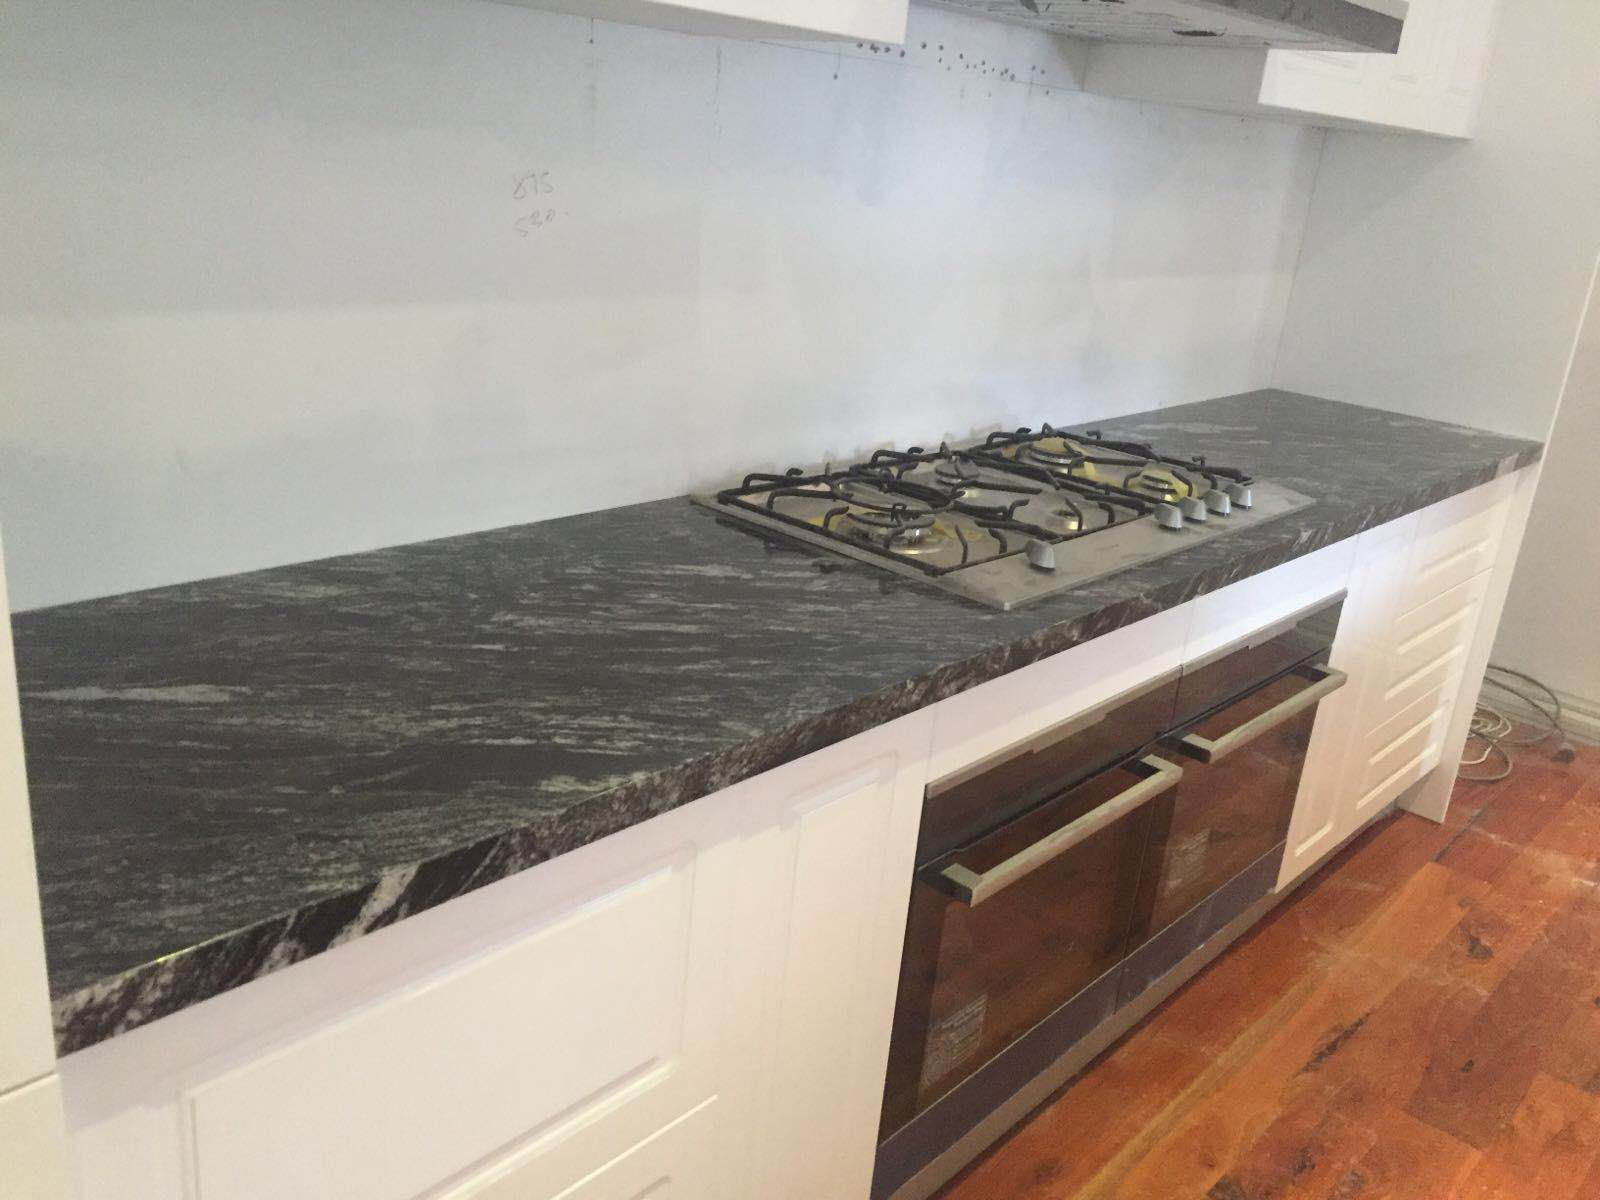 50 Granite Countertops In Spanish Kitchen Remodeling Ideas On A Small Budget Check More